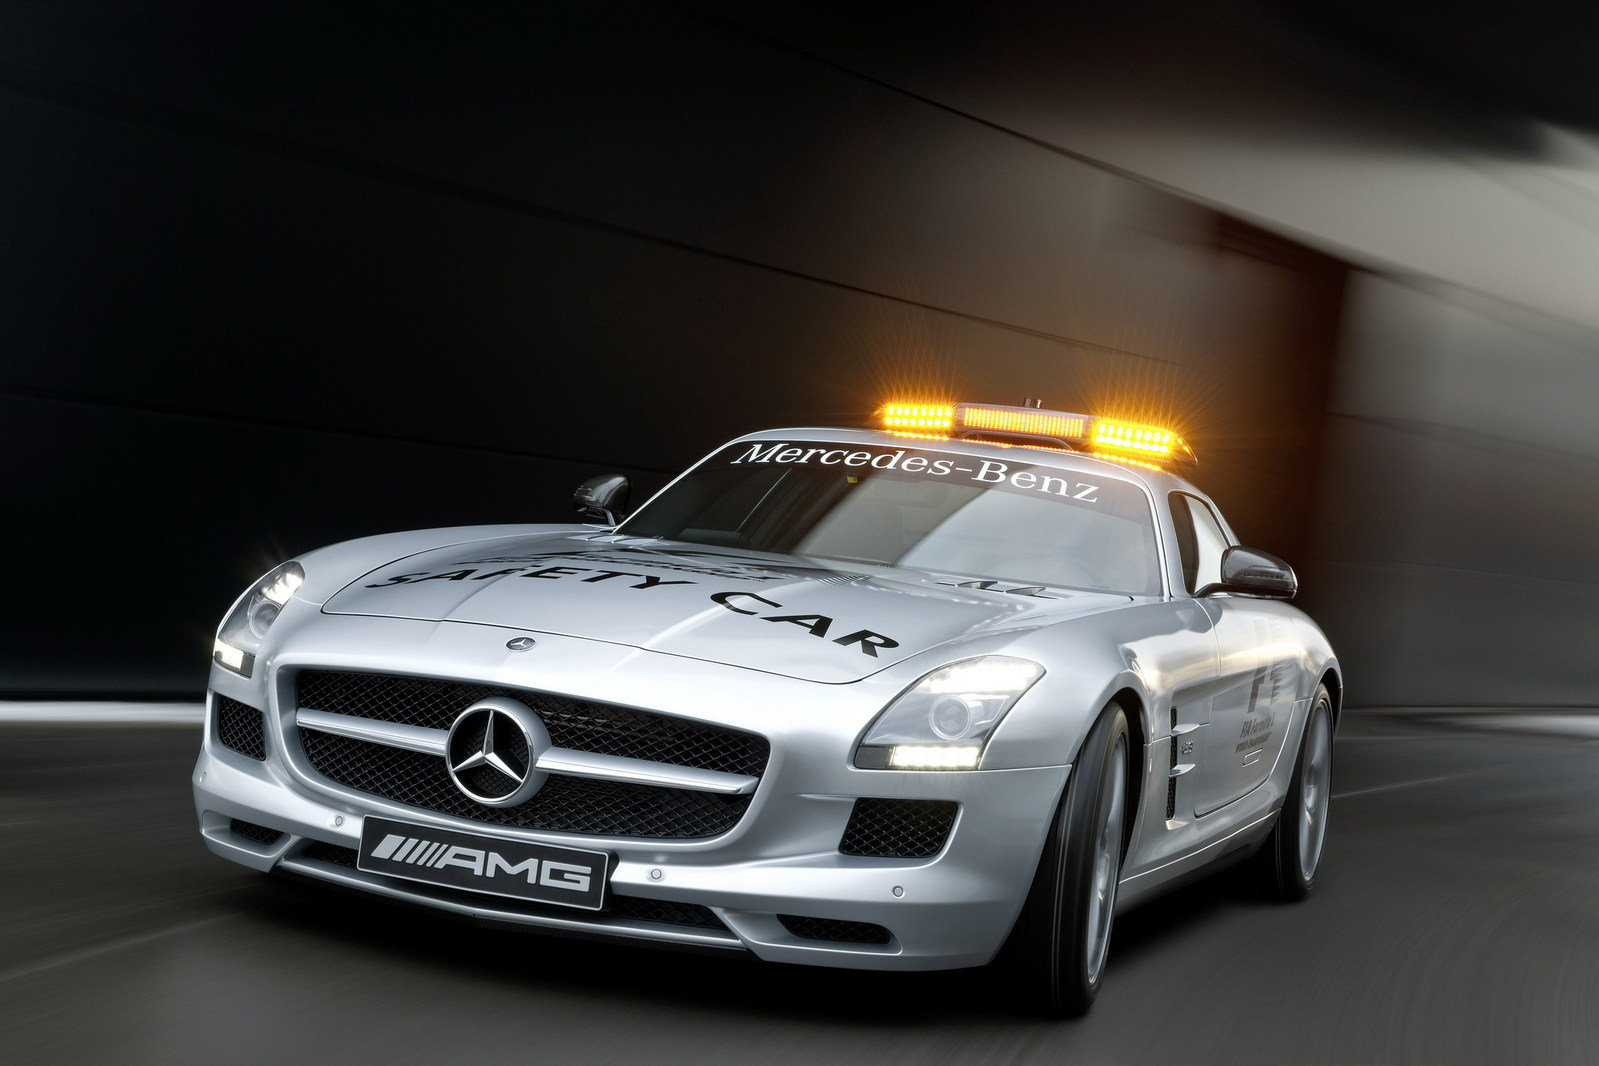 2010 mercedes sls amg safety car review top speed. Black Bedroom Furniture Sets. Home Design Ideas